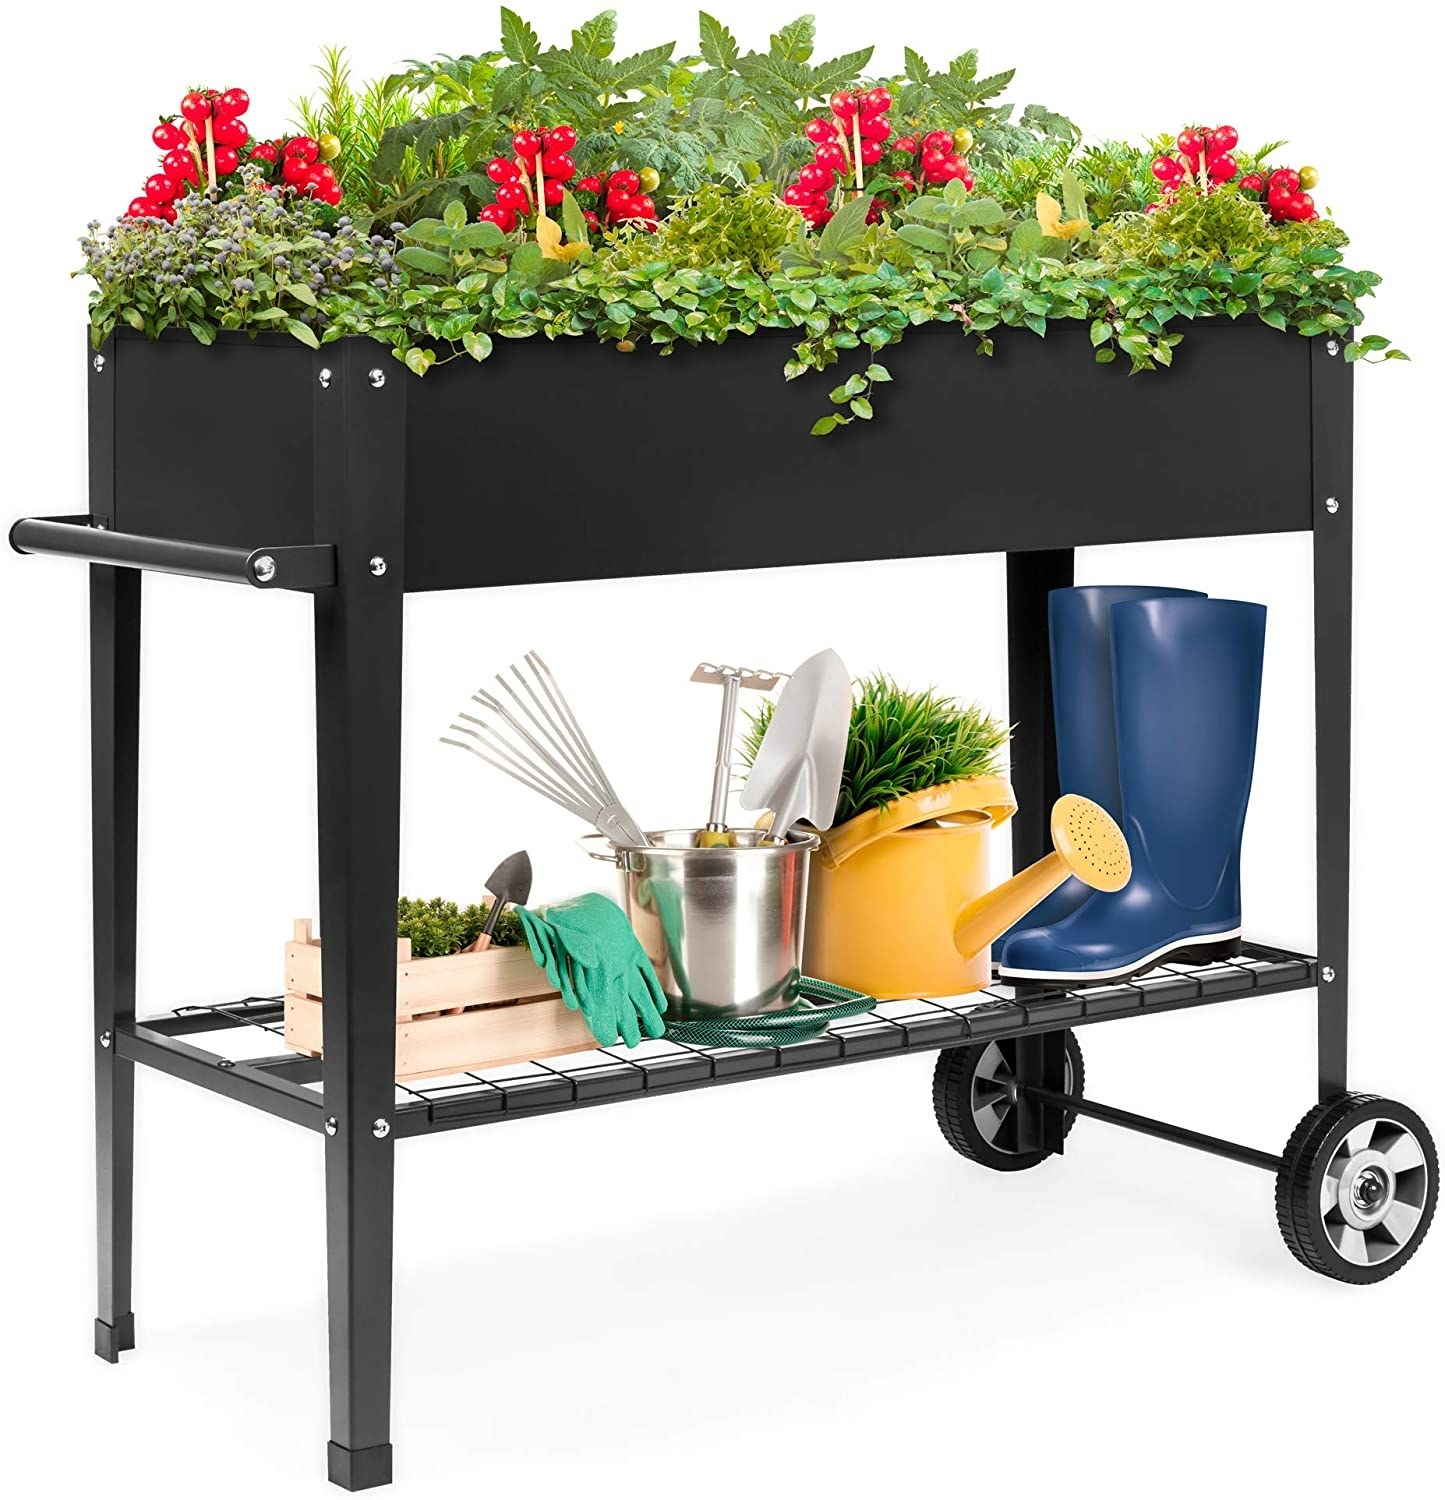 A black metal cart with two wheels, a ventilated storage shelf, and a bed full of plants